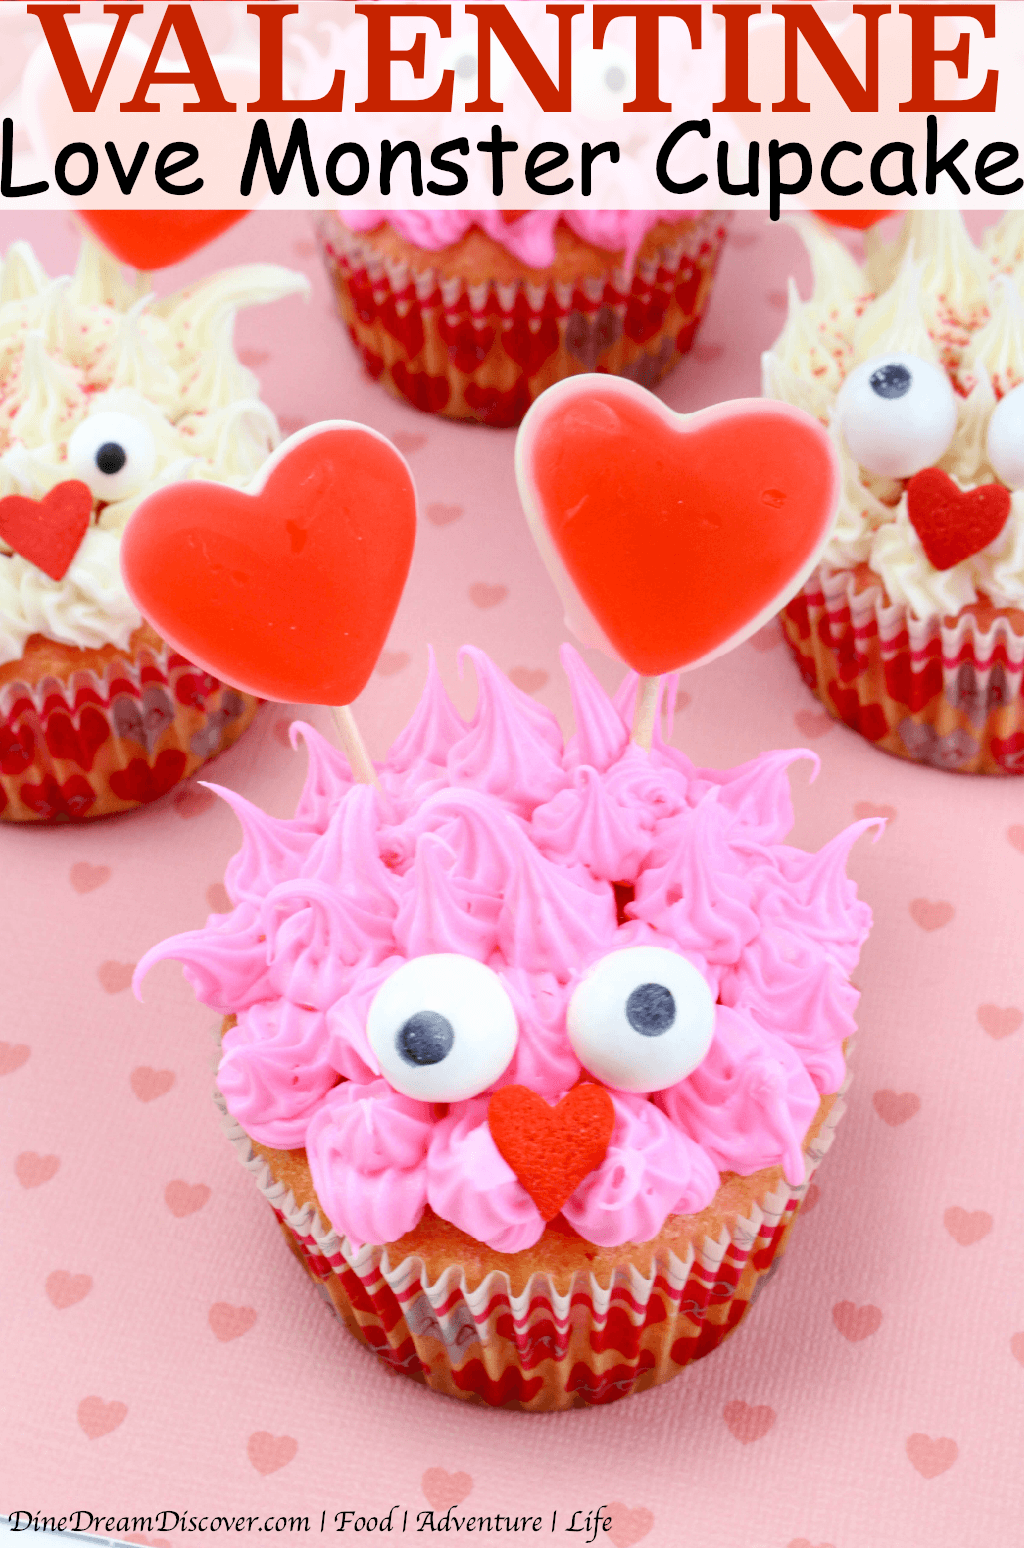 A funValentine Love Monster Cupcake Recipe that looks like a rugged monster that is perfect for the class or office party.